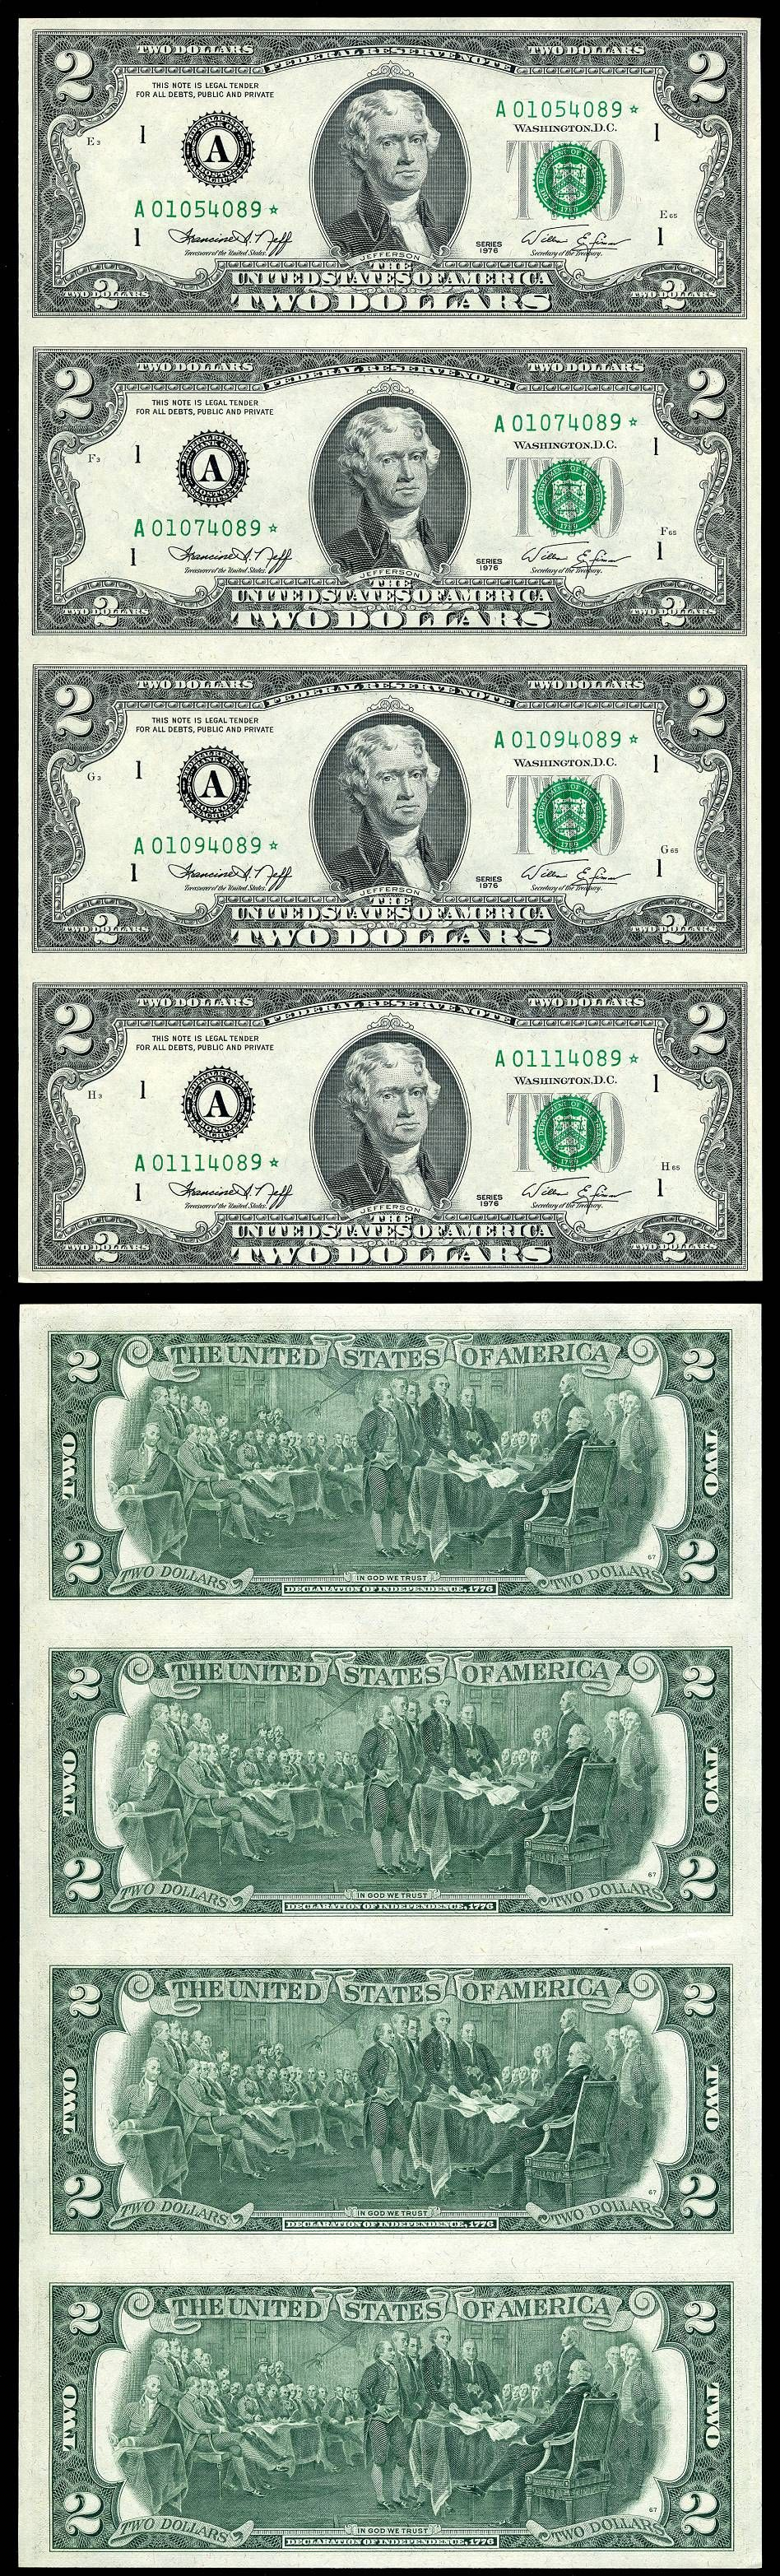 1976 2 Dollar Bills Worth : dollar, bills, worth, Federal, Reserve, Uncut, Sheet, Boston, Massachusetts, District, 4/15/2012, Coins, Worth, Money,, Money, Notes